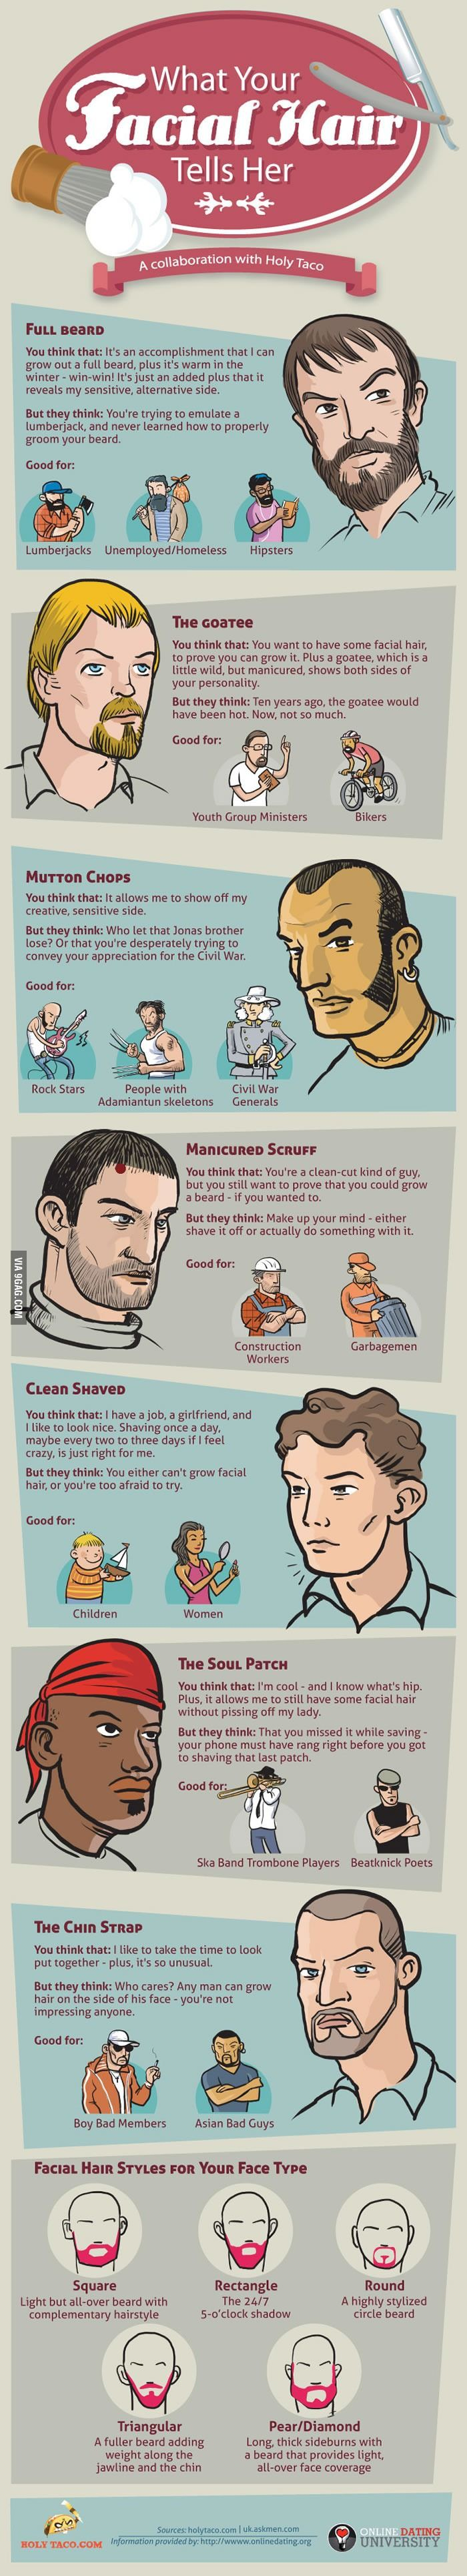 What he belived but she thinks about full beard, goatee, mutton chops, scruff, clean shaven, soul patch & chin strap - Infographic